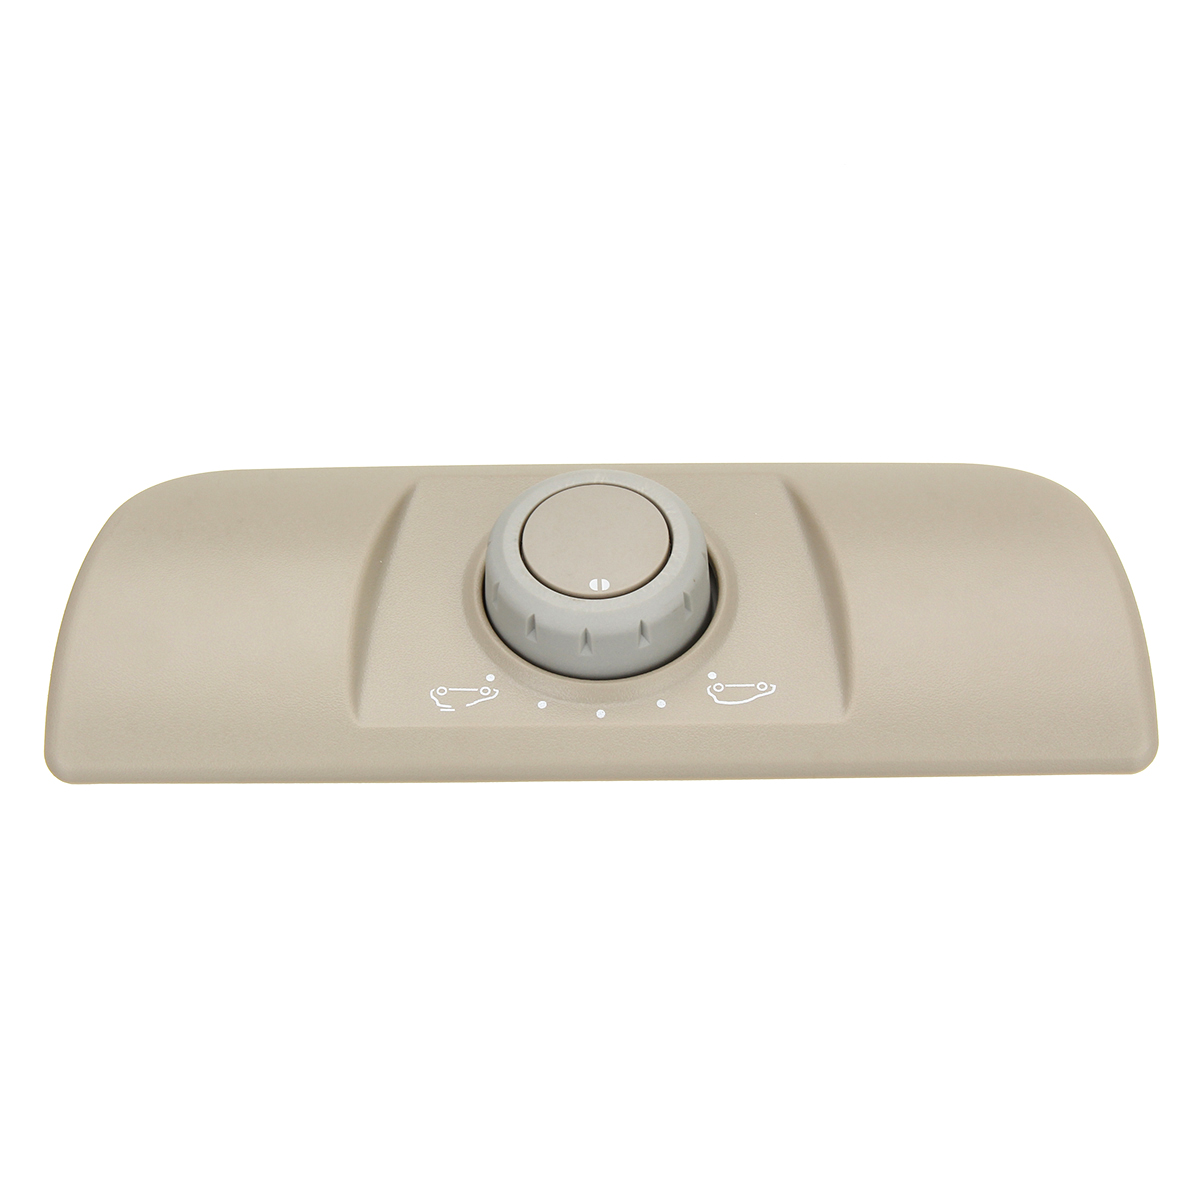 Sunroof Window Switch Panel For Renault Megane Sc